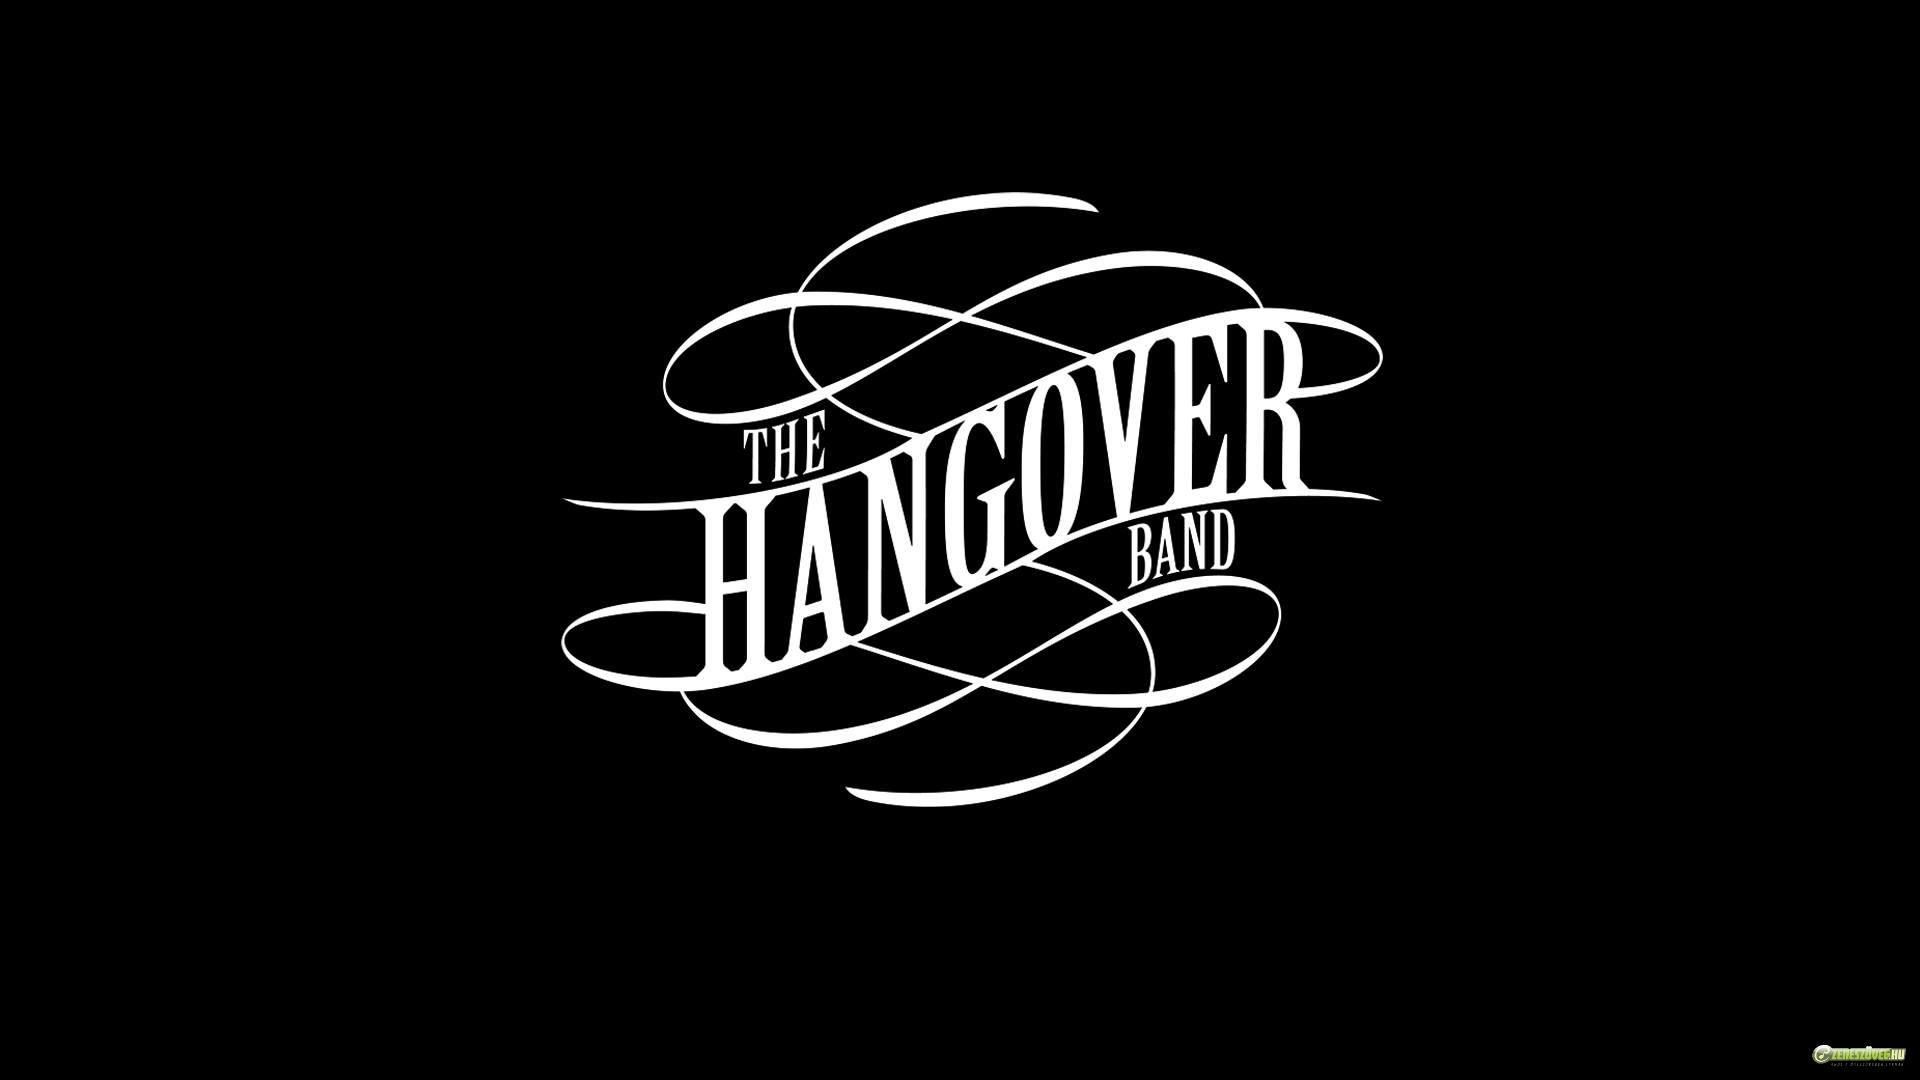 The Hangover Band